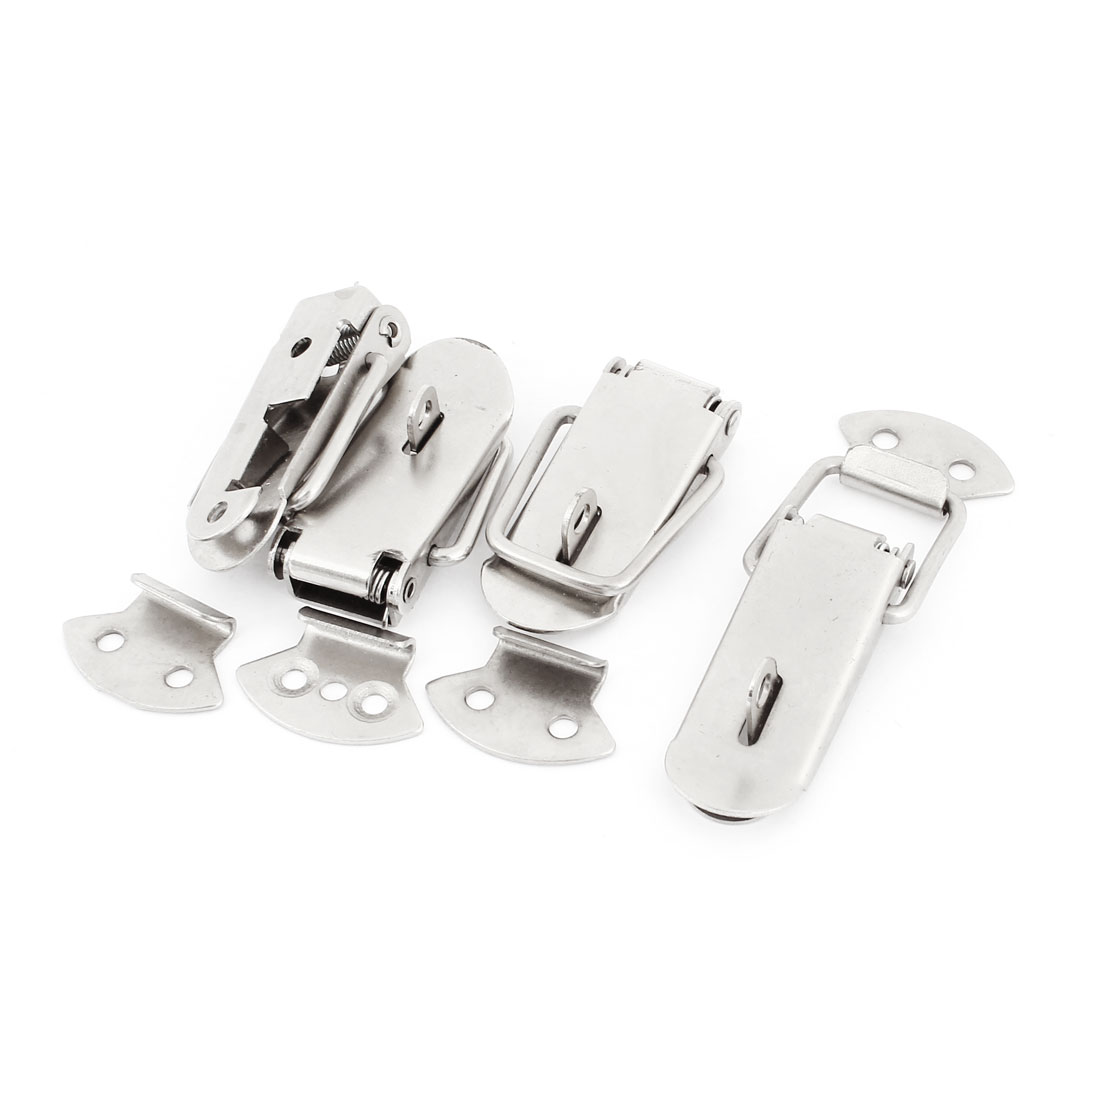 Toolbox Cases Stainless Steel Latch Toggle Hasp Lock Strike 7.5cm Long 4sets